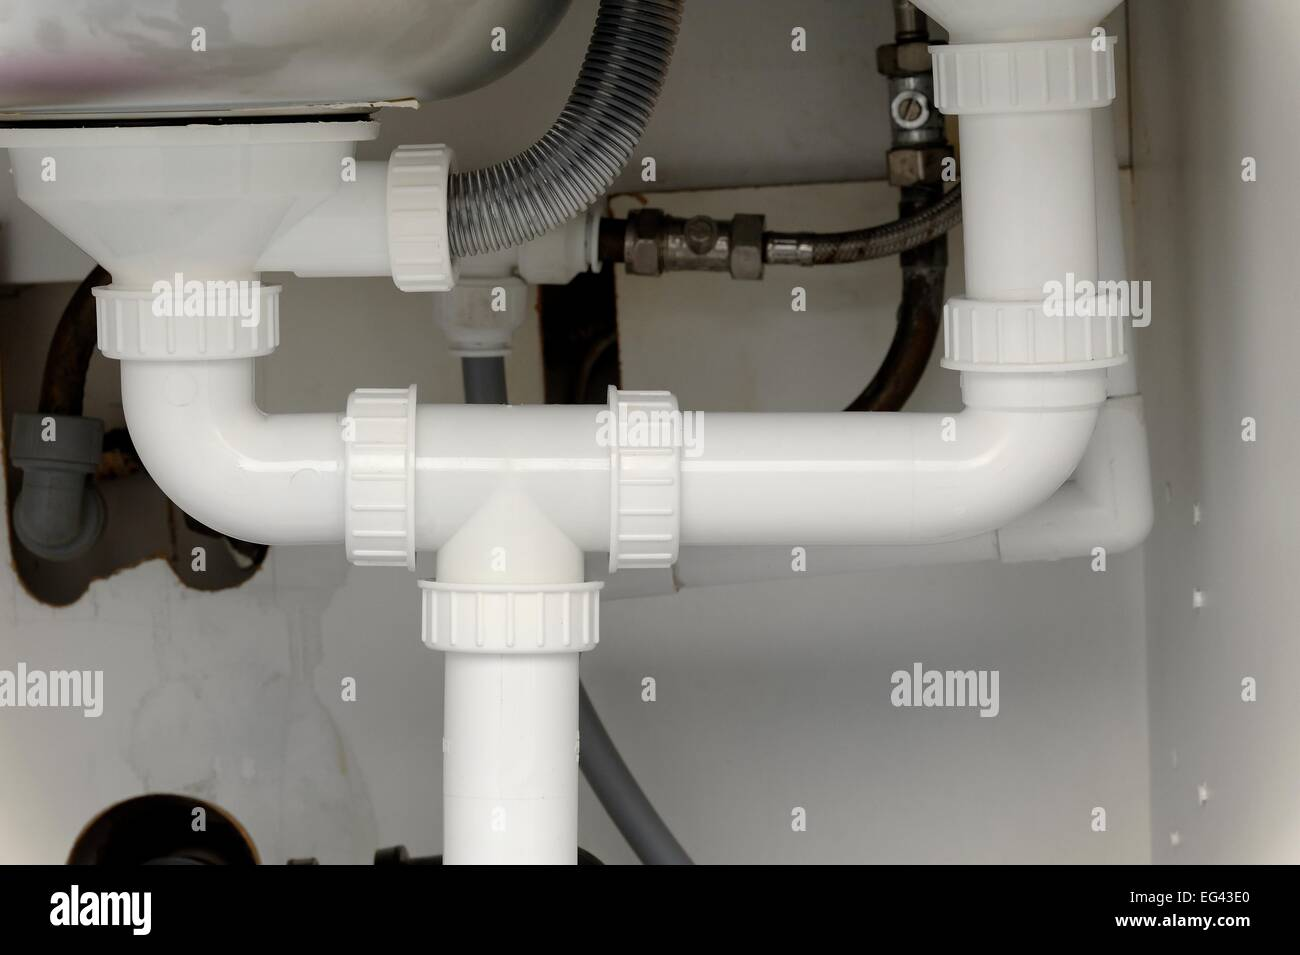 White Plastic Pipework Under A Domestic Kitchen Sink England UK   Stock  Image